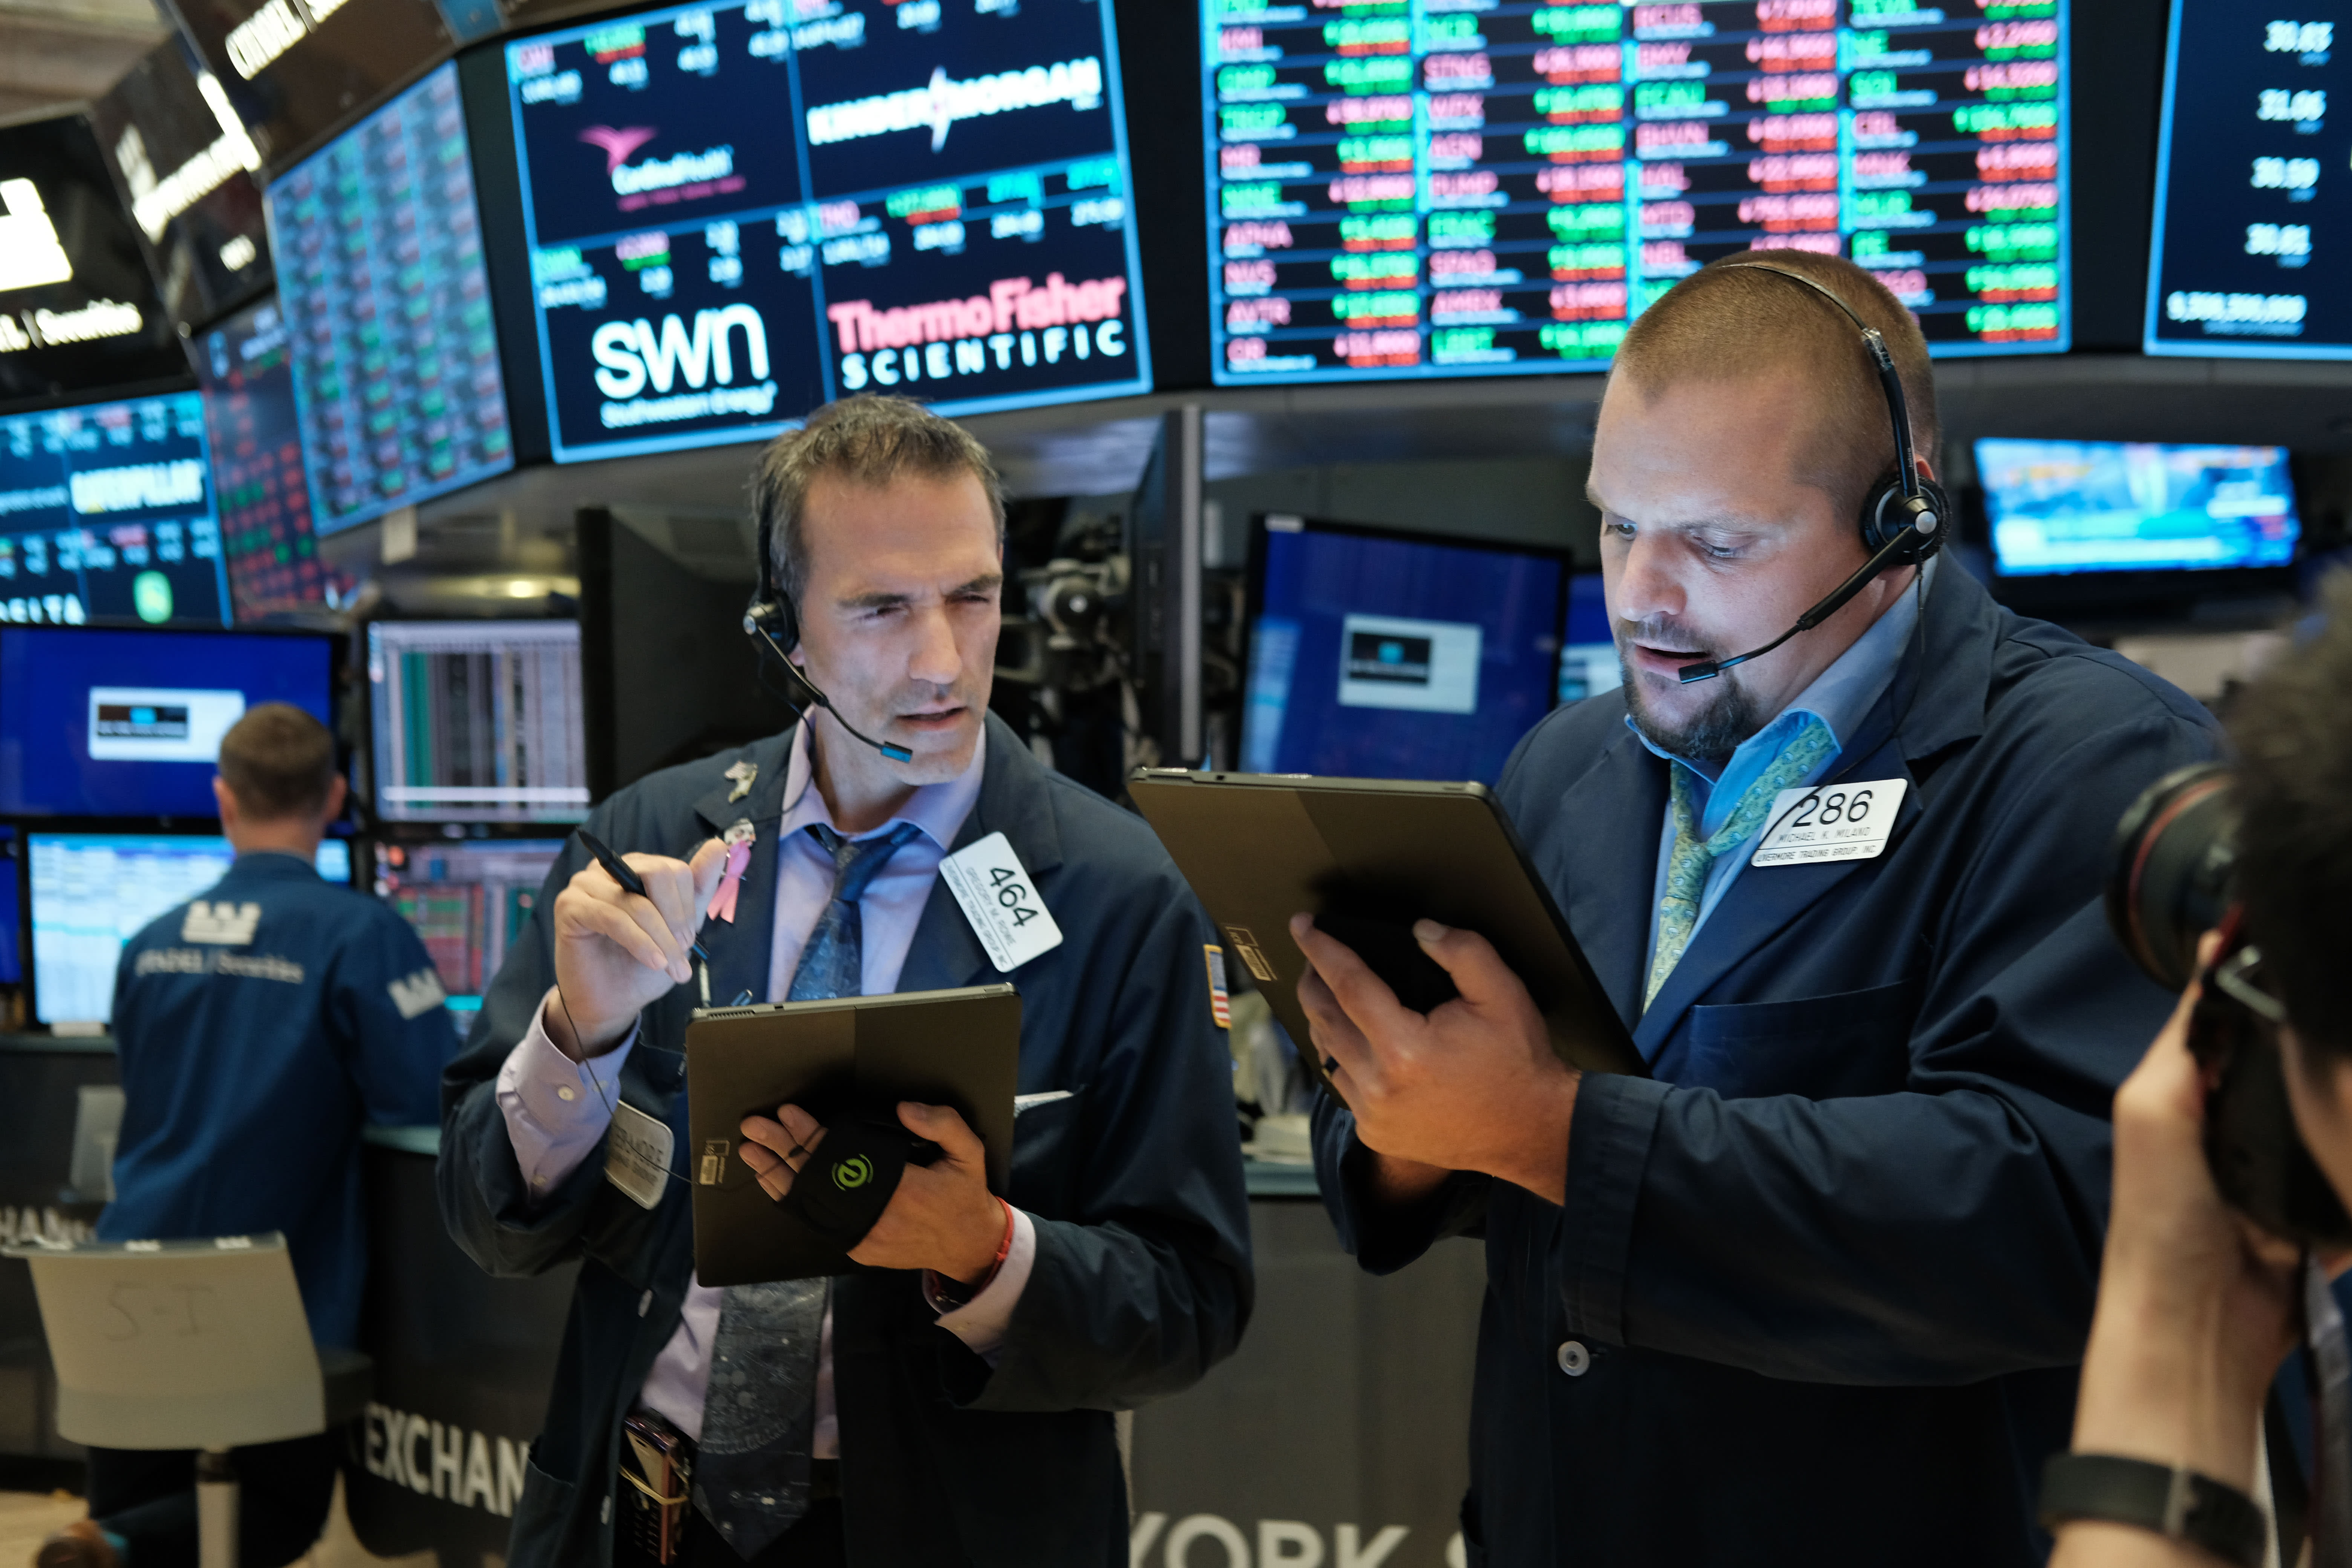 Investors through choppy August markets but September may be no better